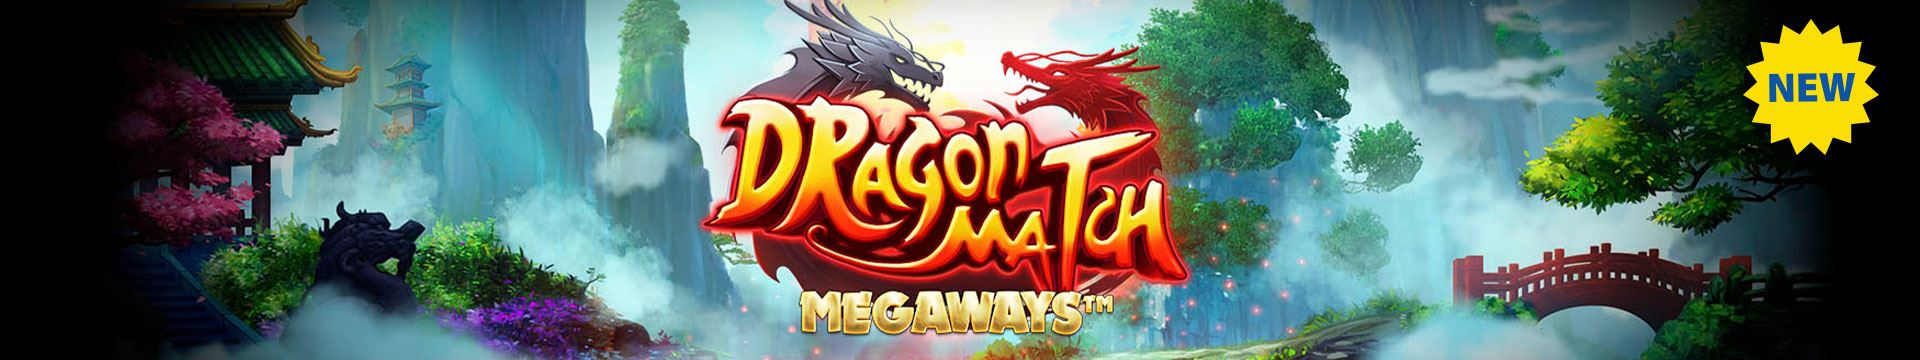 Dragon_Match_Megaways